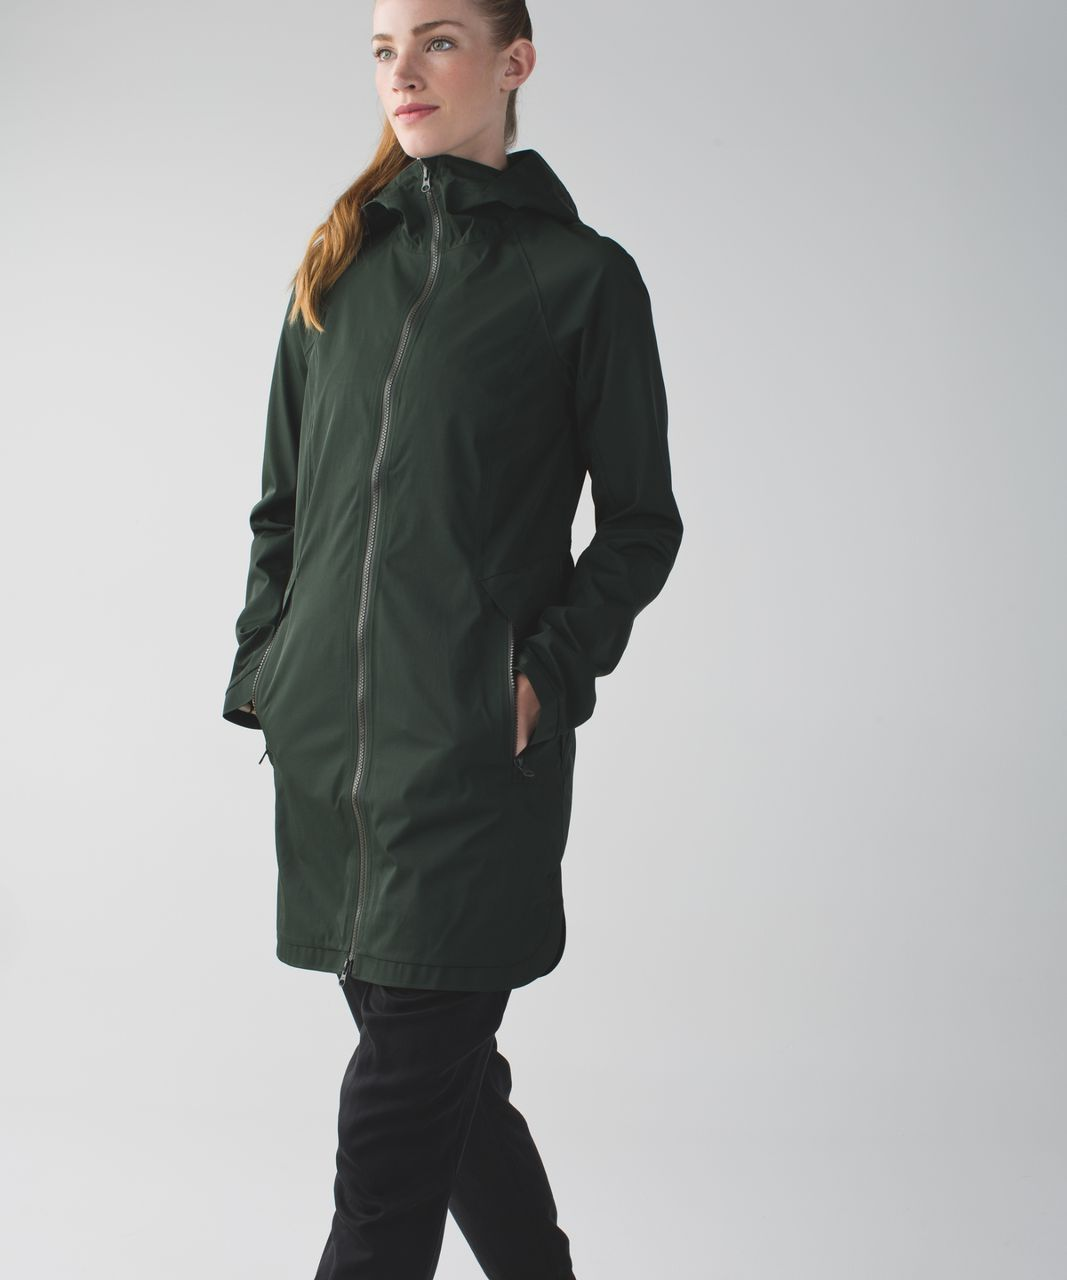 Lululemon Definitely Raining Jacket - Gator Green